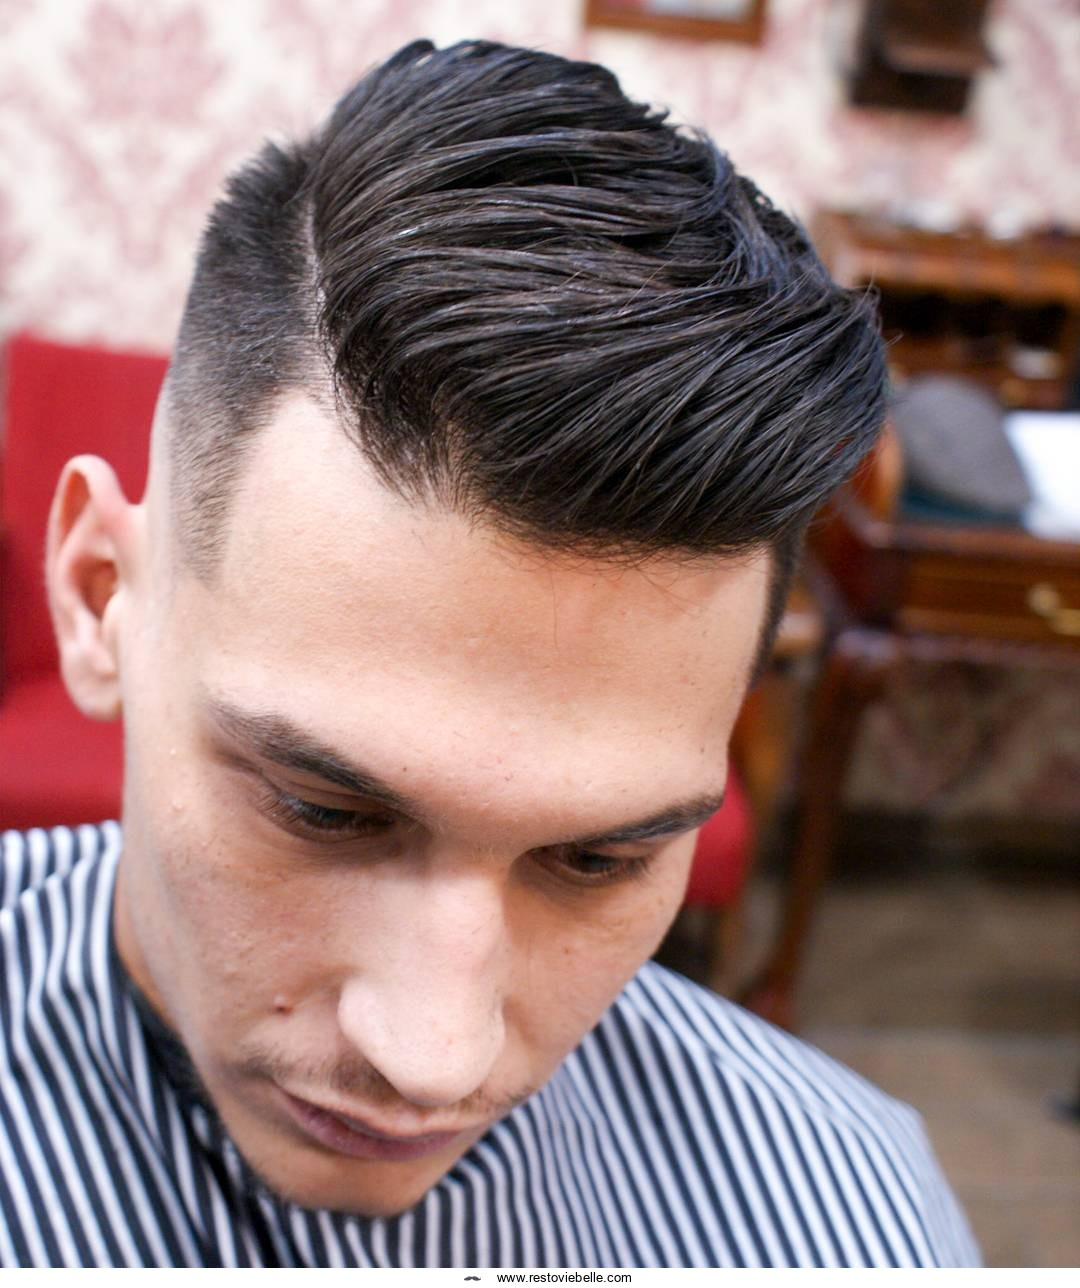 Comb Over Fade hairstyle for men with thick hair